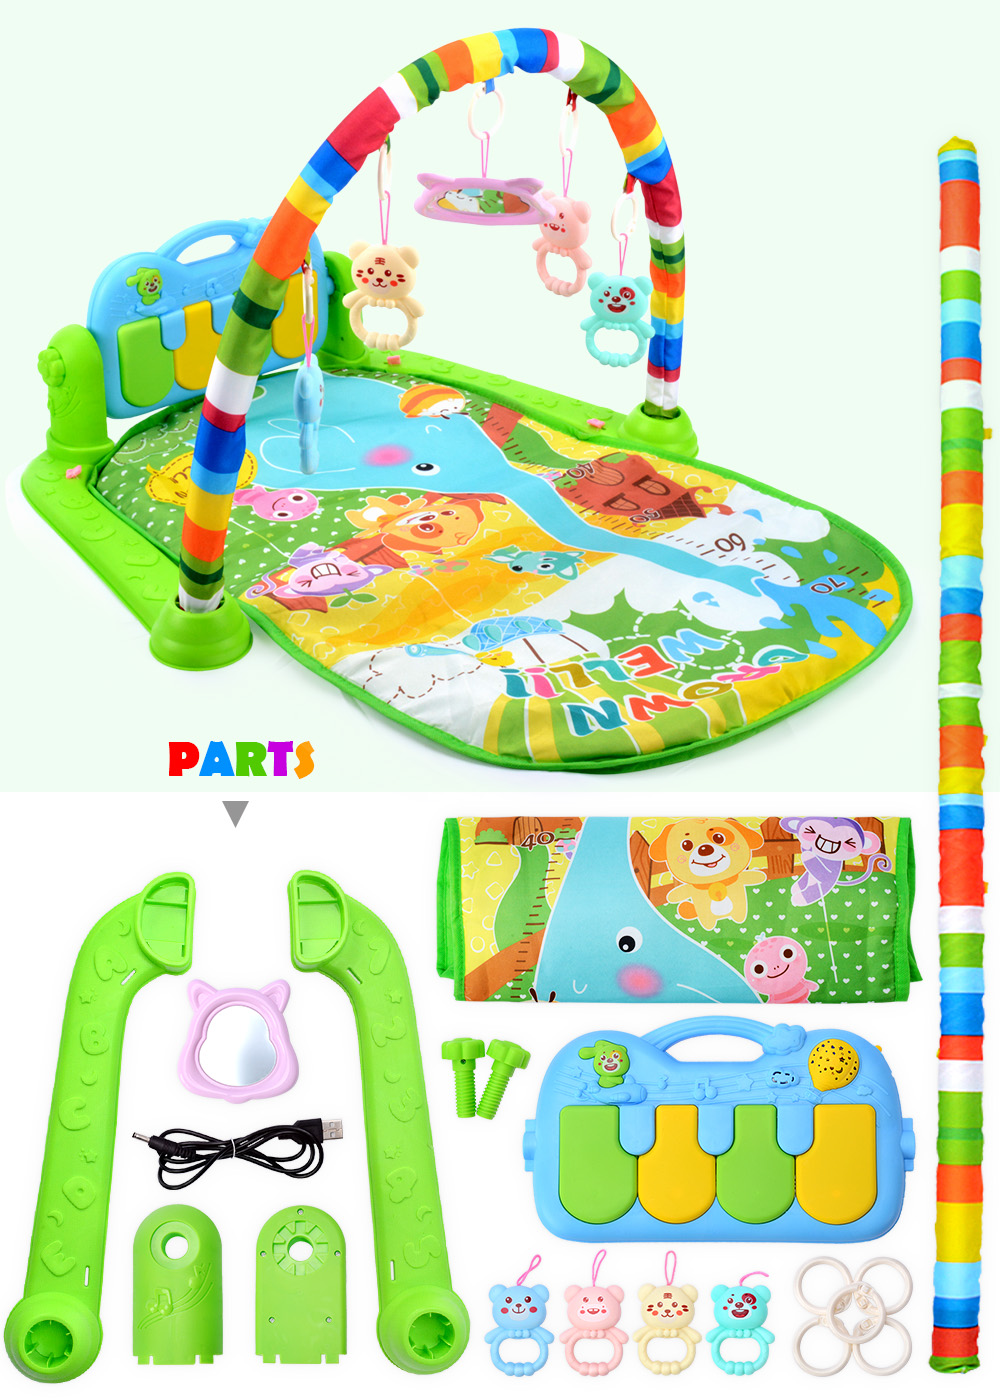 H9370ab1264274eb89ef1cd0ea7314661n 16 Styles Baby Music Rack Play Mat Kid Rug Puzzle Carpet Piano Keyboard Infant Playmat Early Education Gym Crawling Game Pad Toy